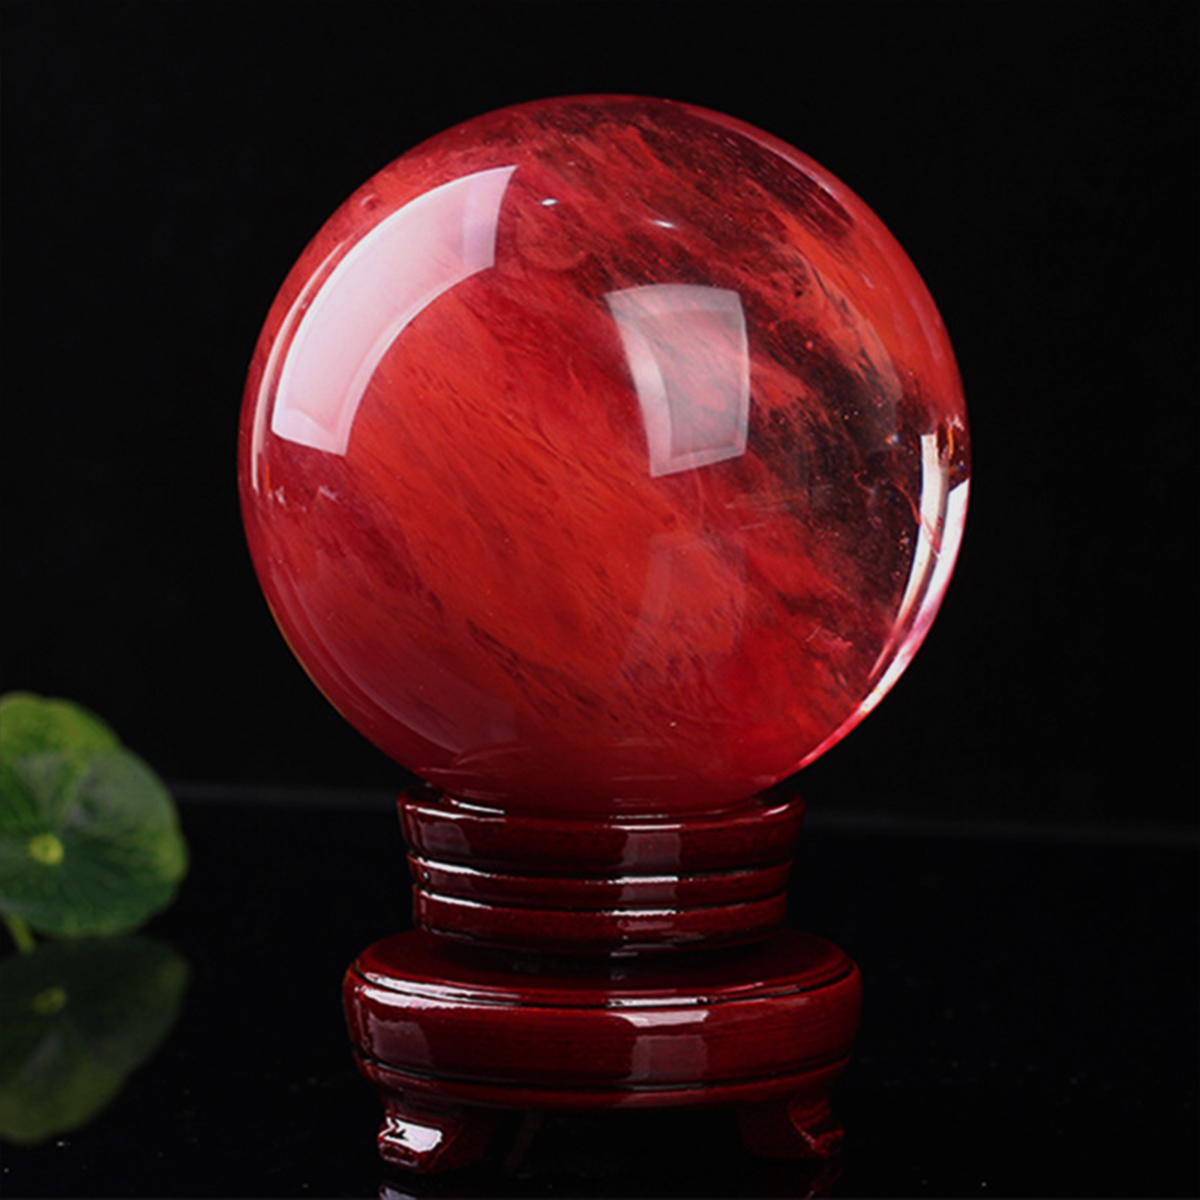 Red Citrine Calcite Quartz Gemstone Stand Crystals Sphere Ball Healing 60mm-80mm